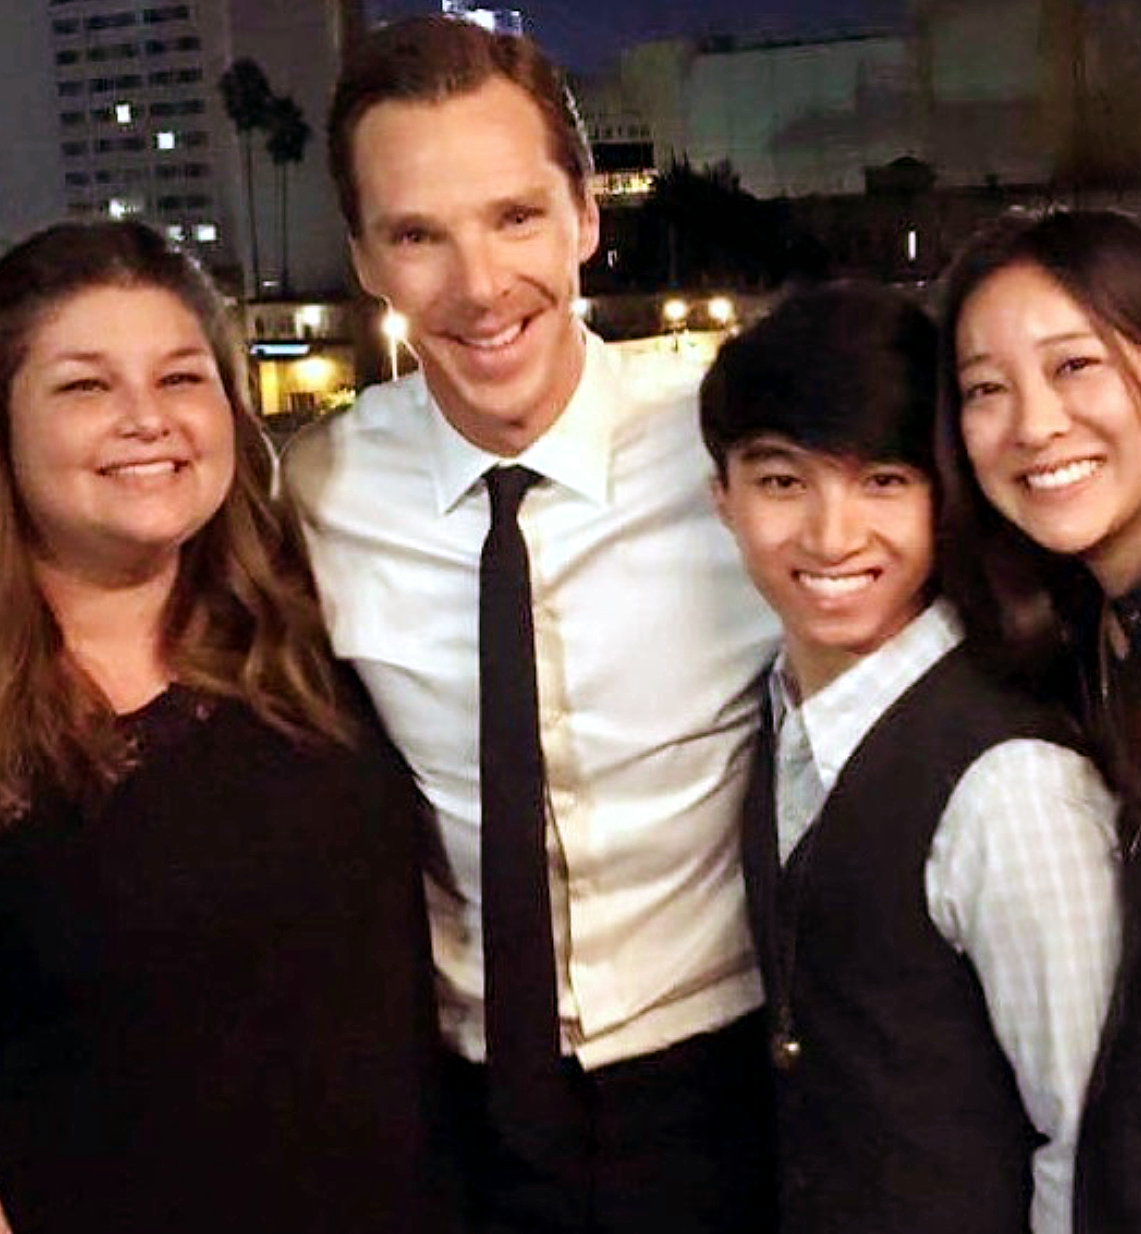 doctor-strange-movie-premiere-benedict-cumberbatch-party